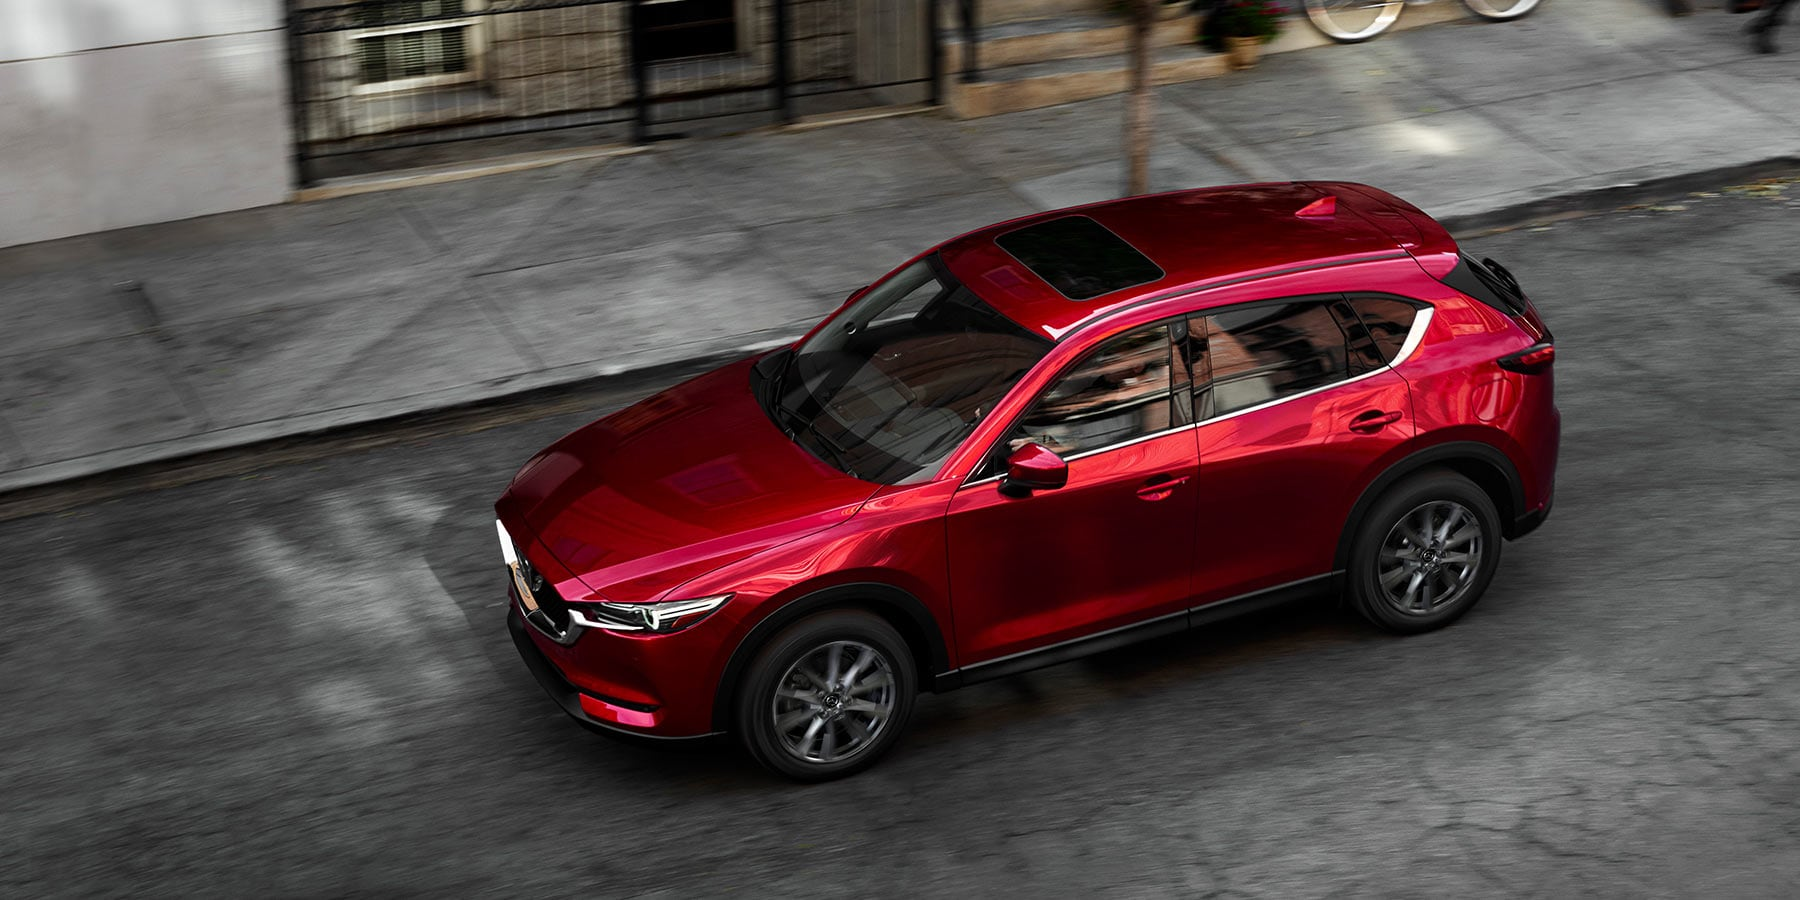 2019 Red Mazda CX-5 Parked